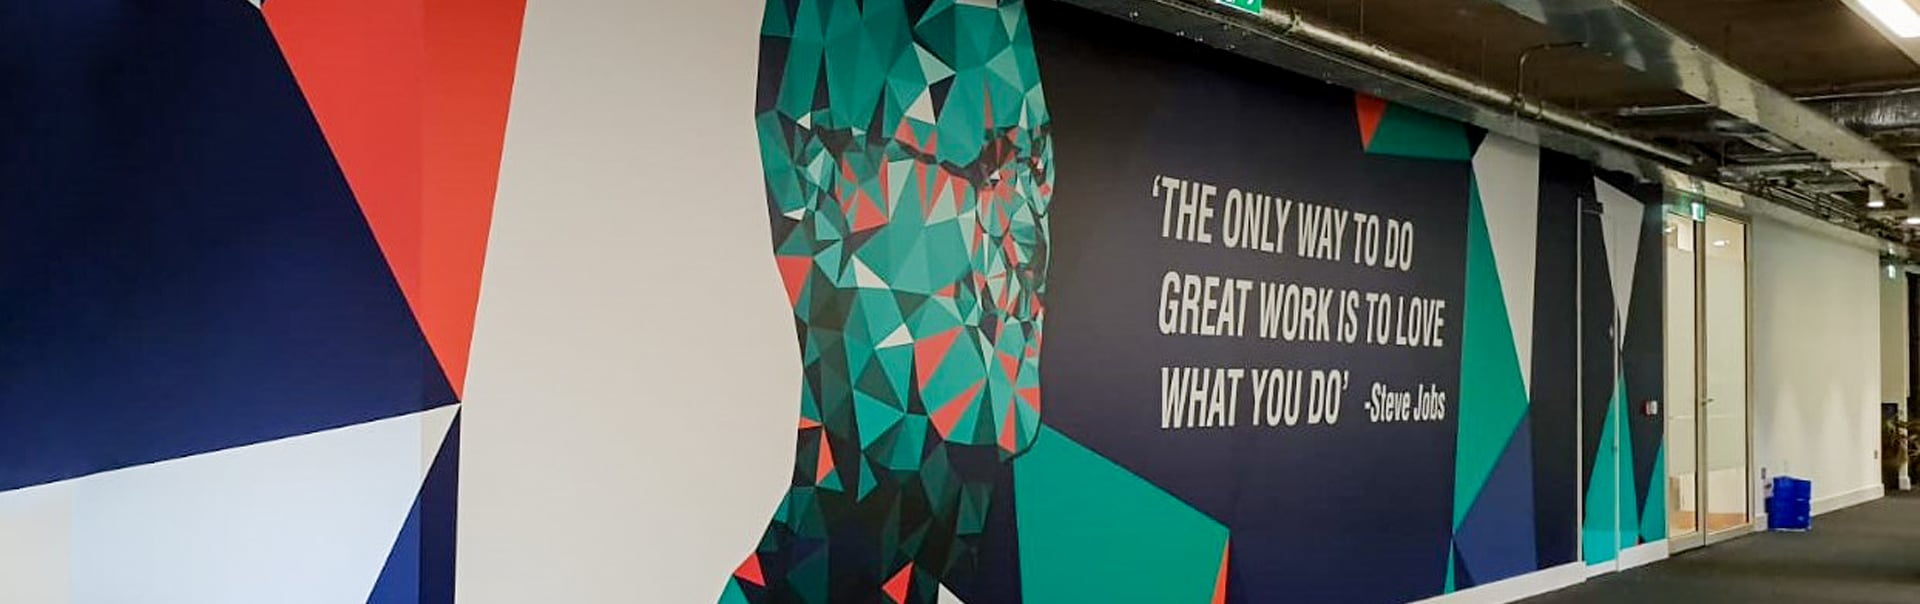 A Steve Jobs supergraphic turns a blank wall into a source of inspiration